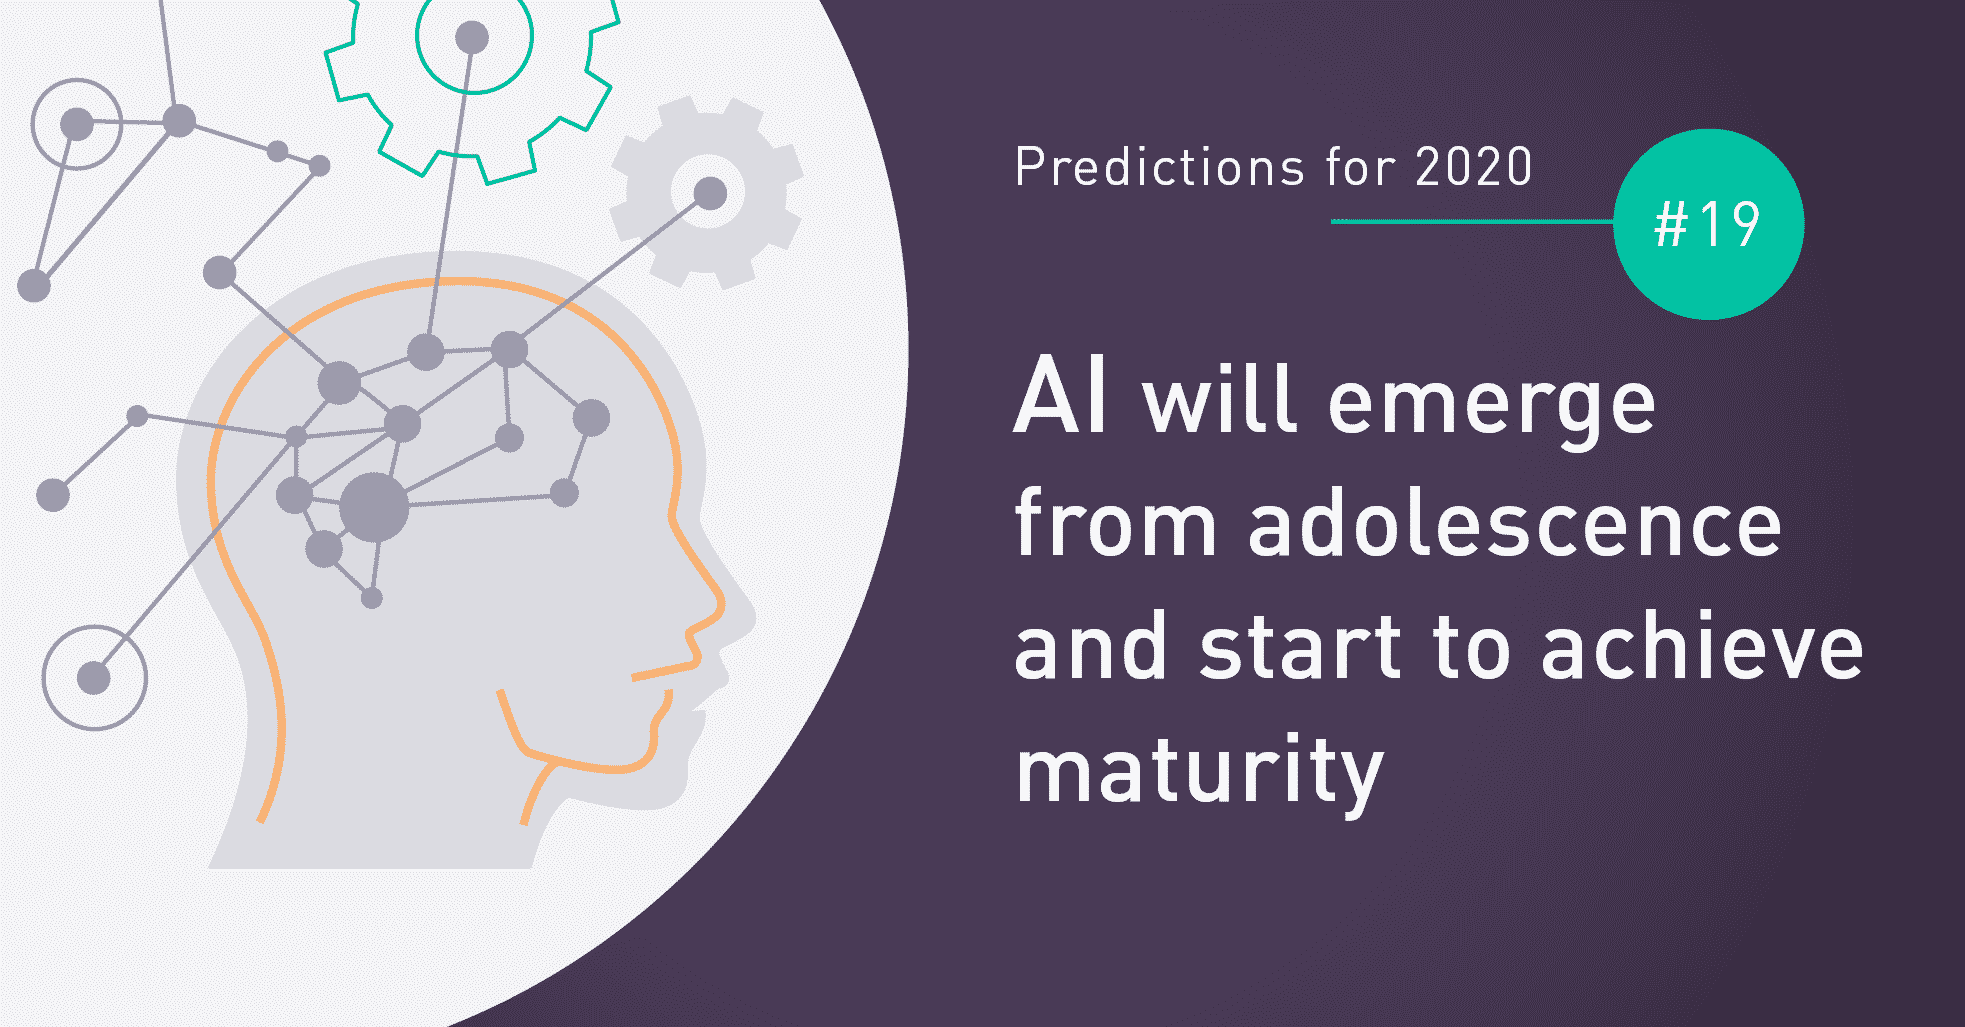 AI will emerge from adolescence and start to achieve maturity